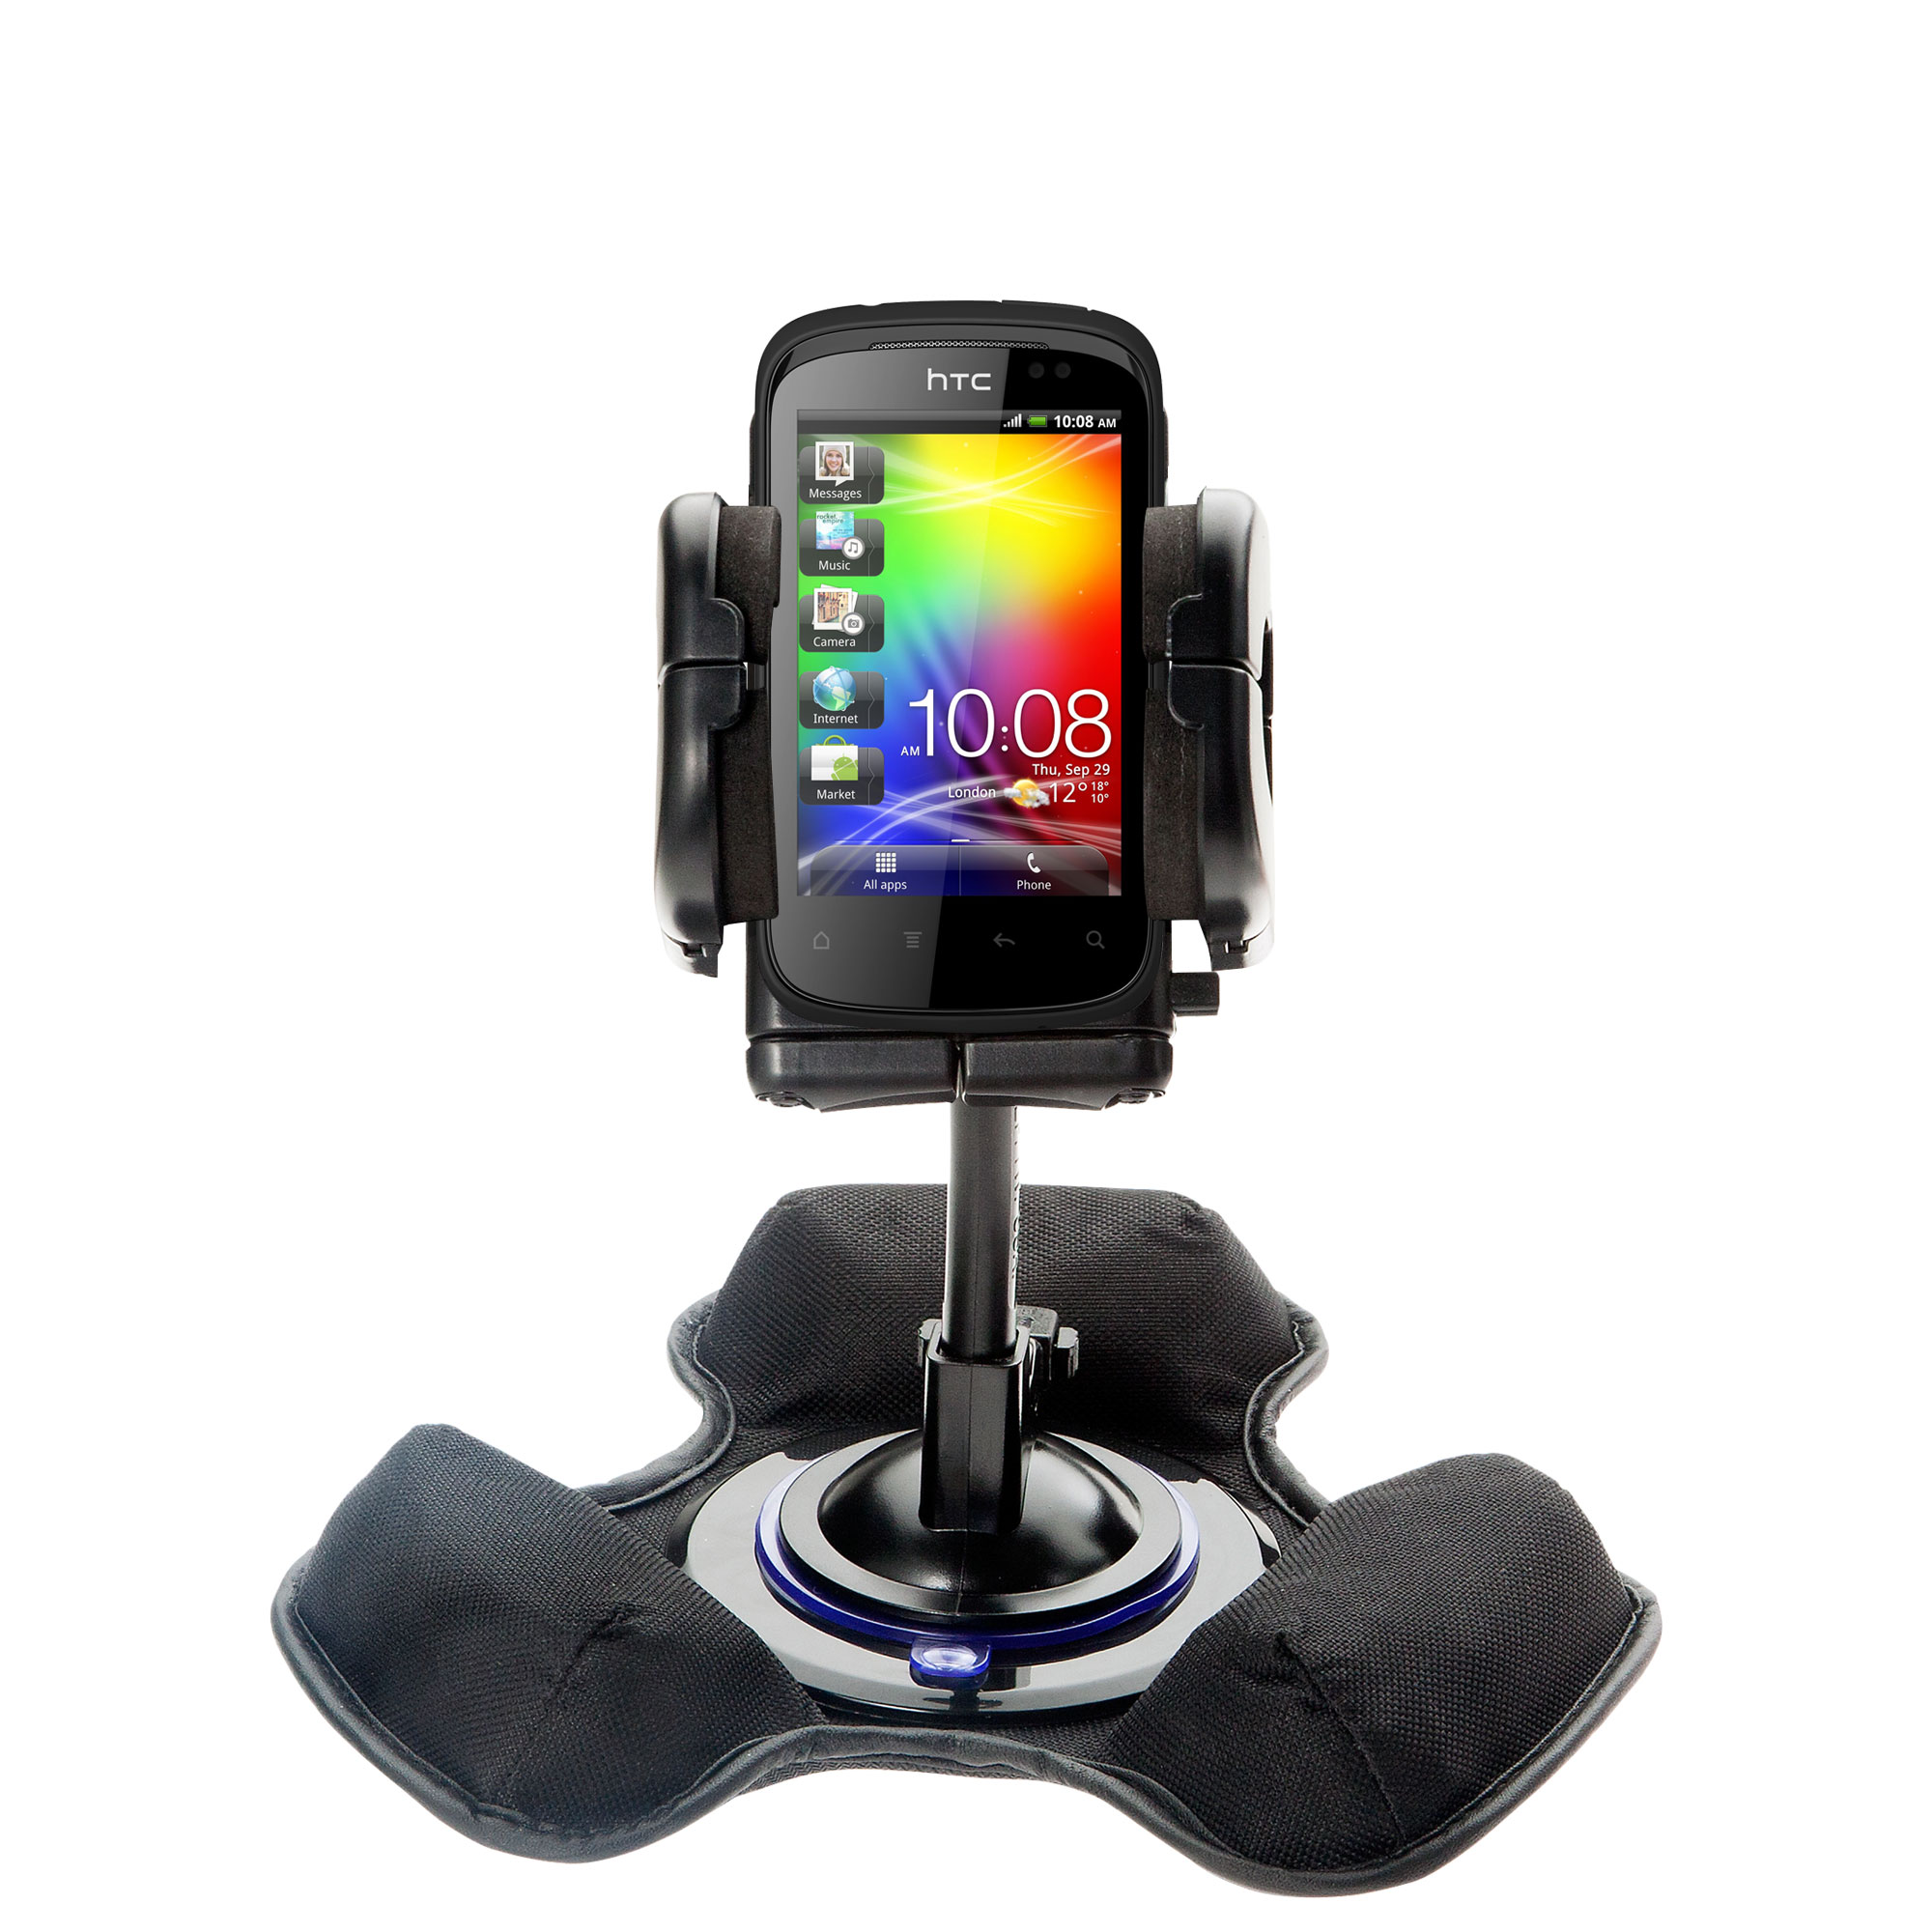 Dash and Windshield Holder compatible with the HTC Explorer